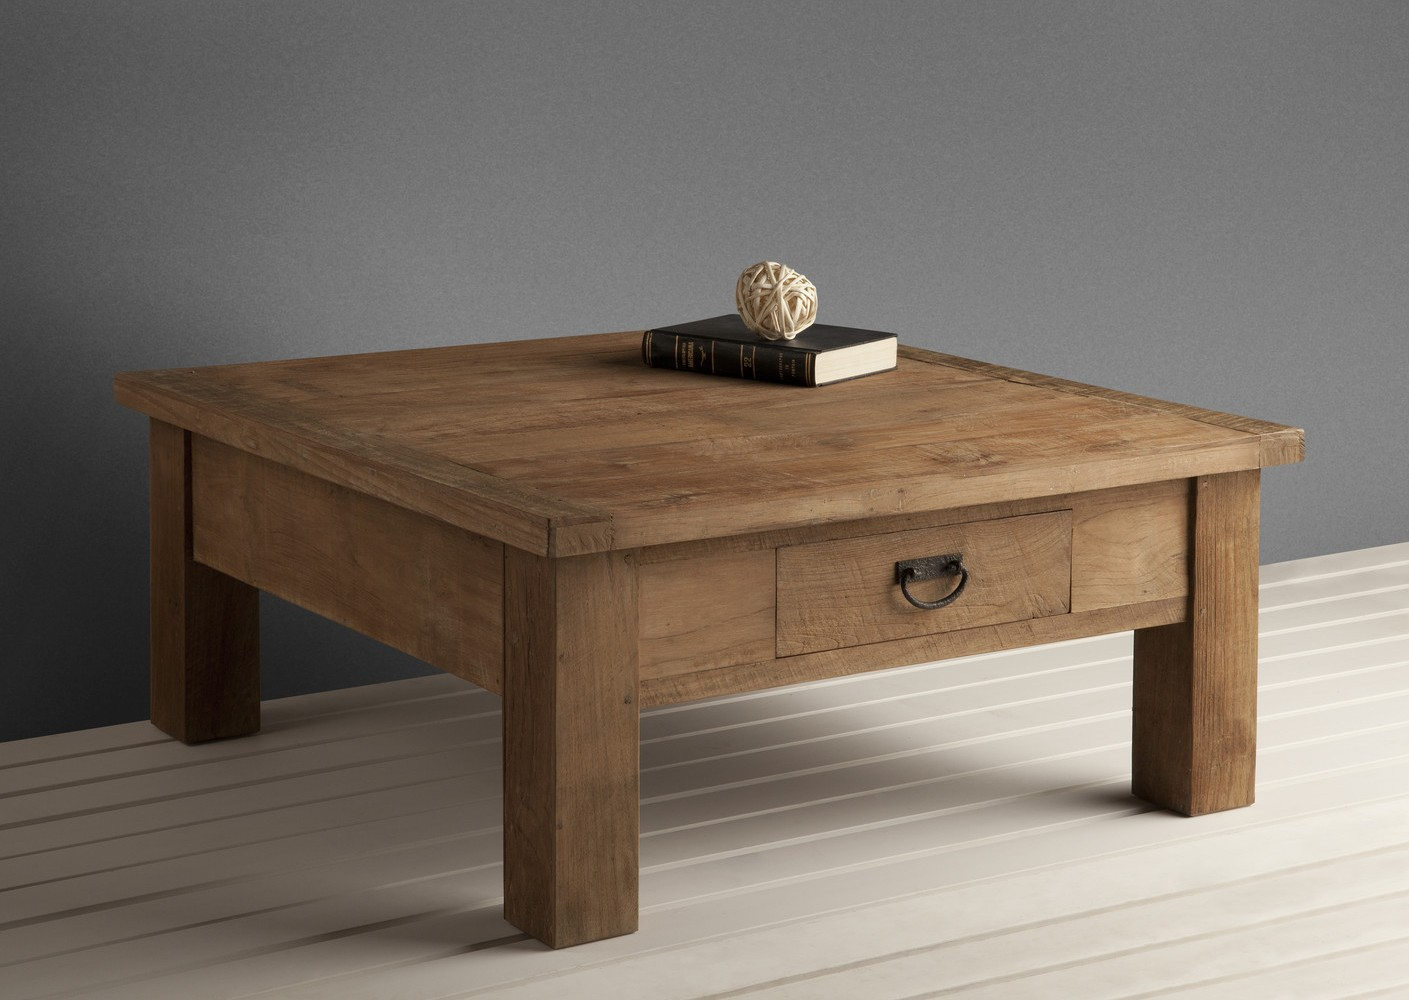 Solid Wood Coffee Table With Small Drawer